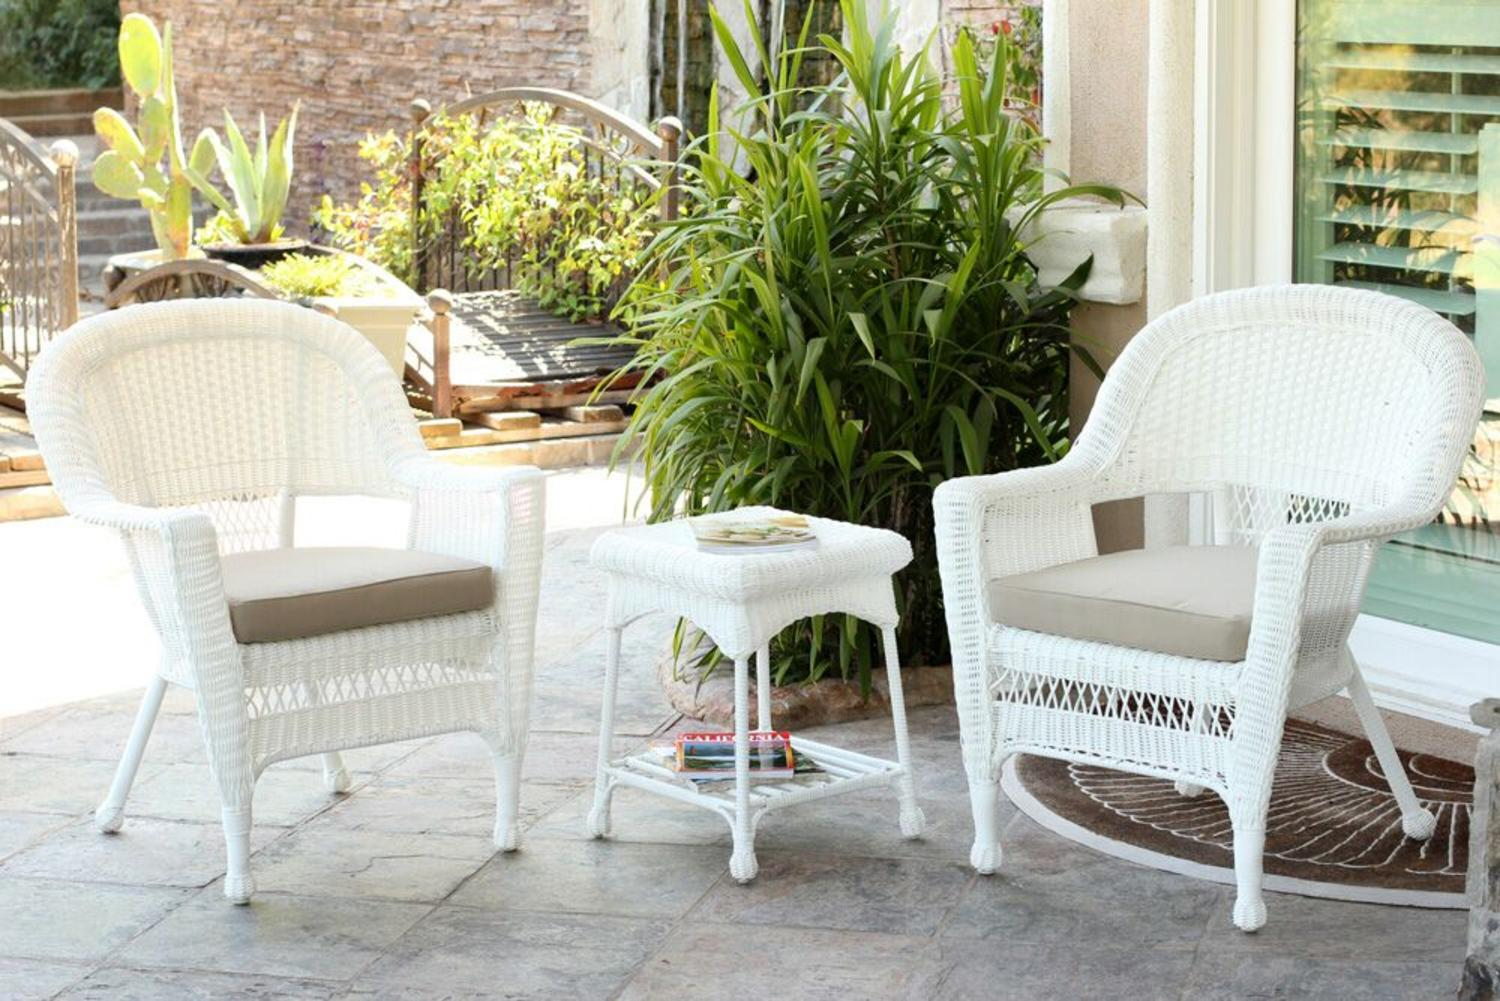 3 Piece White Resin Wicker Patio Chairs And End Table Furniture Set   Tan  Cushions